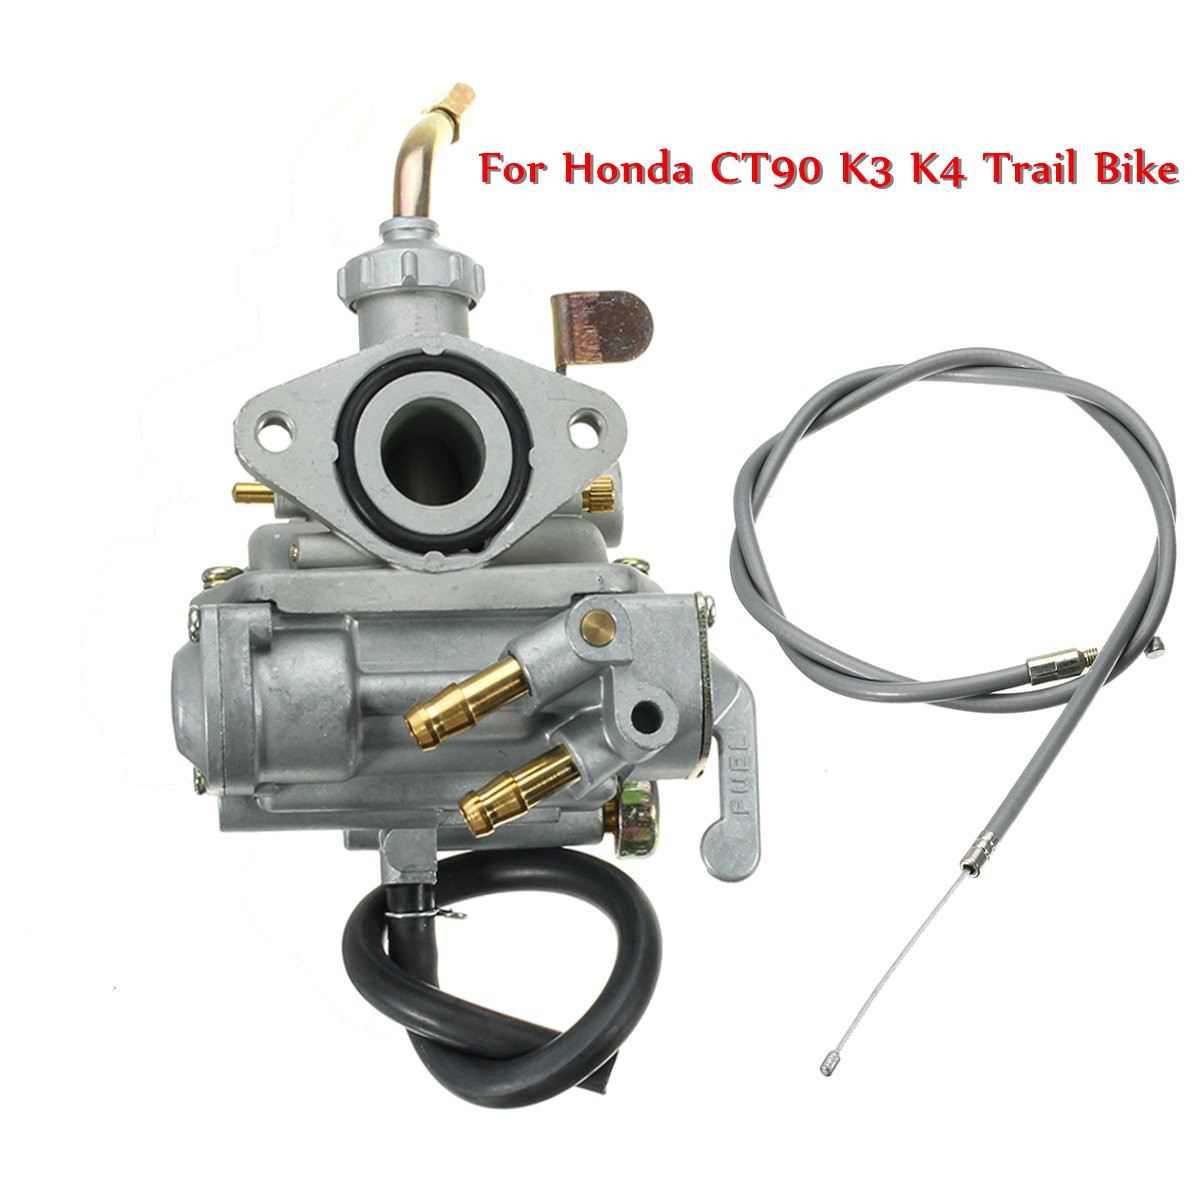 1 Set Carburetor & Throttle Cable C02139 For Honda CT90 K3 K4 Trail Bike  Engine New-in Carburetors from Automobiles & Motorcycles on Aliexpress.com  ...